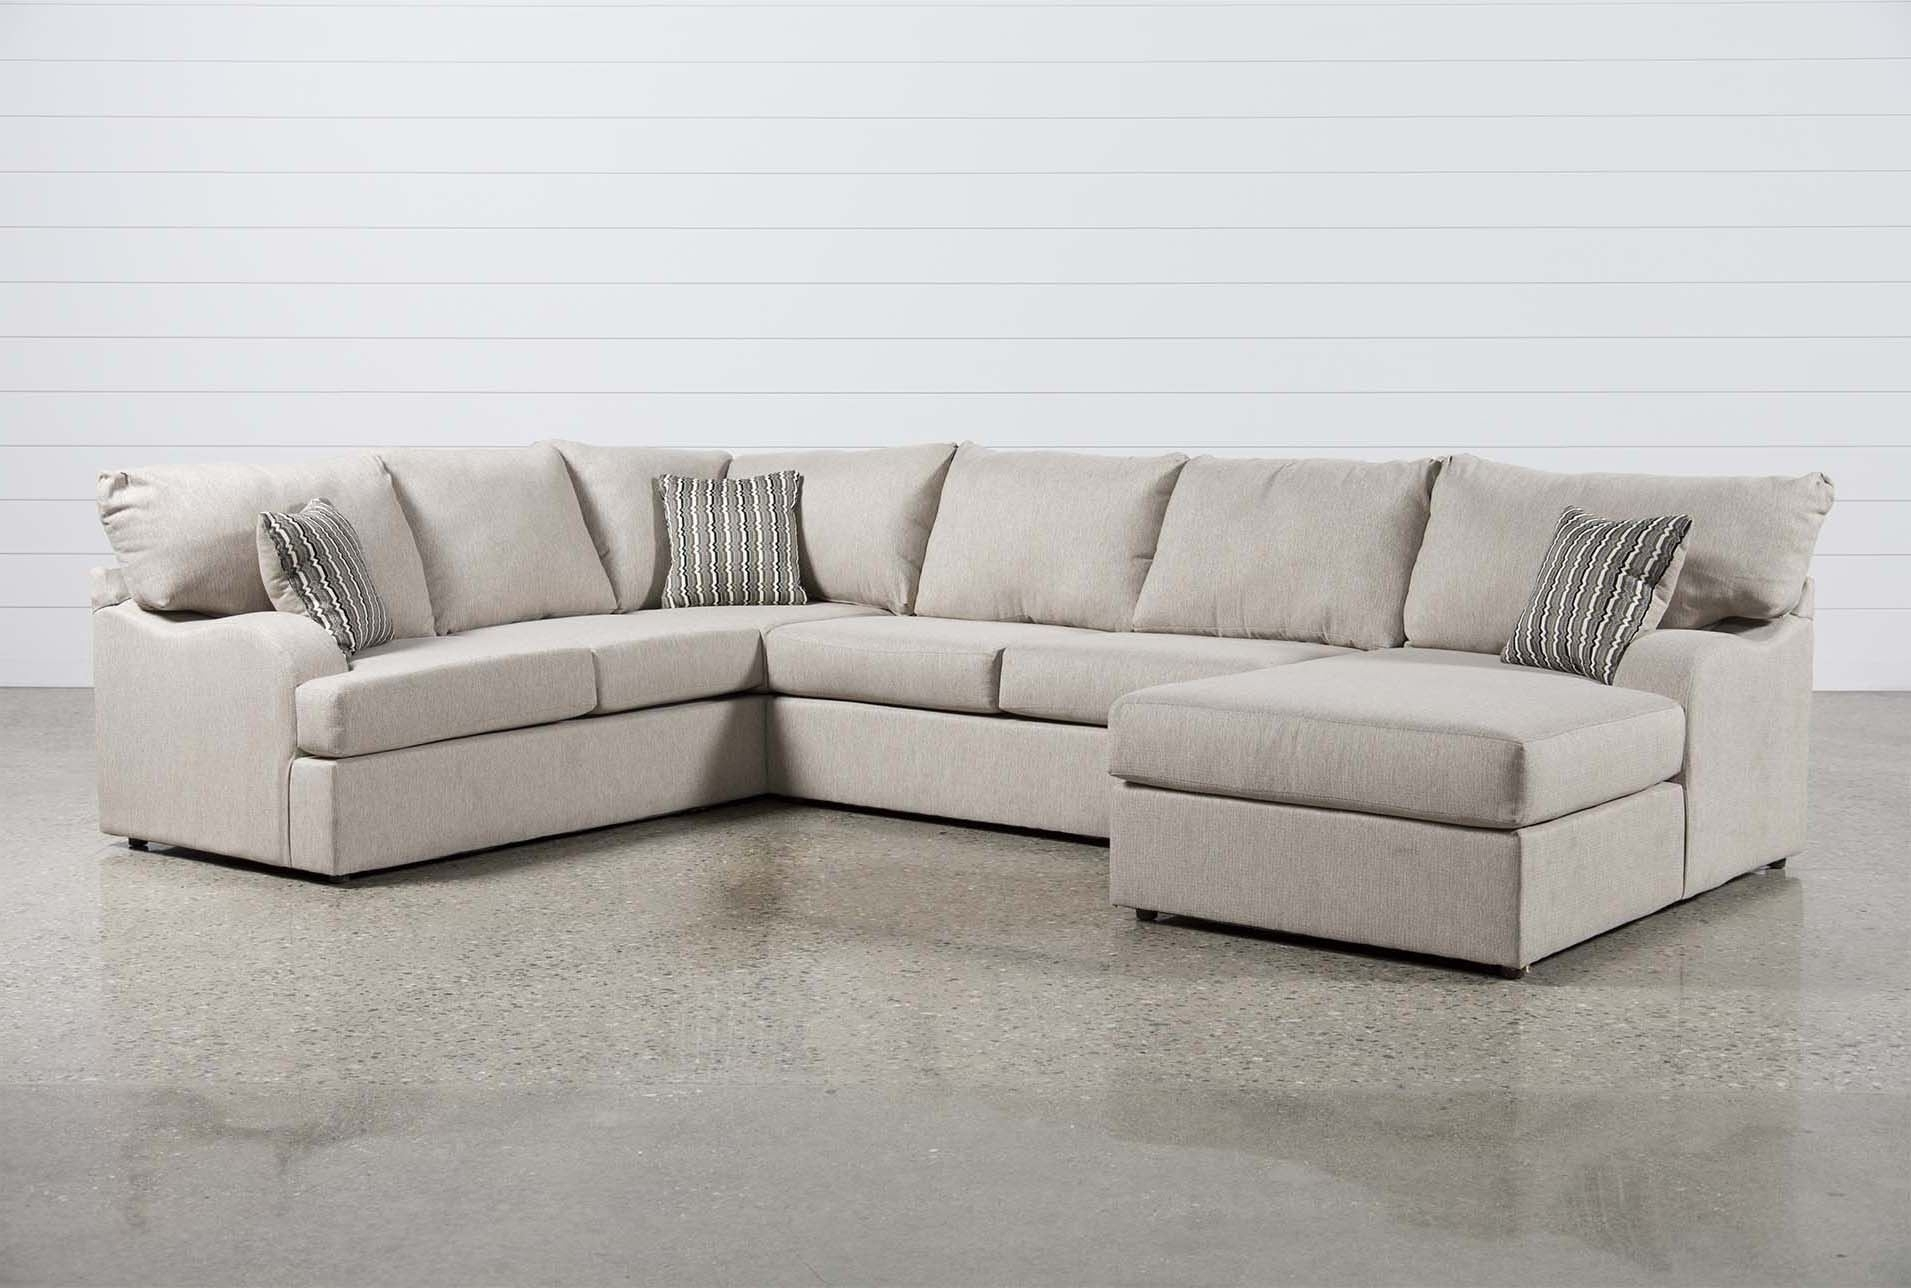 Ideas Of Raf Chaise For Aspen 2 Piece Sectional W Raf Chaise Living Pertaining To Aspen 2 Piece Sectionals With Raf Chaise (View 4 of 25)